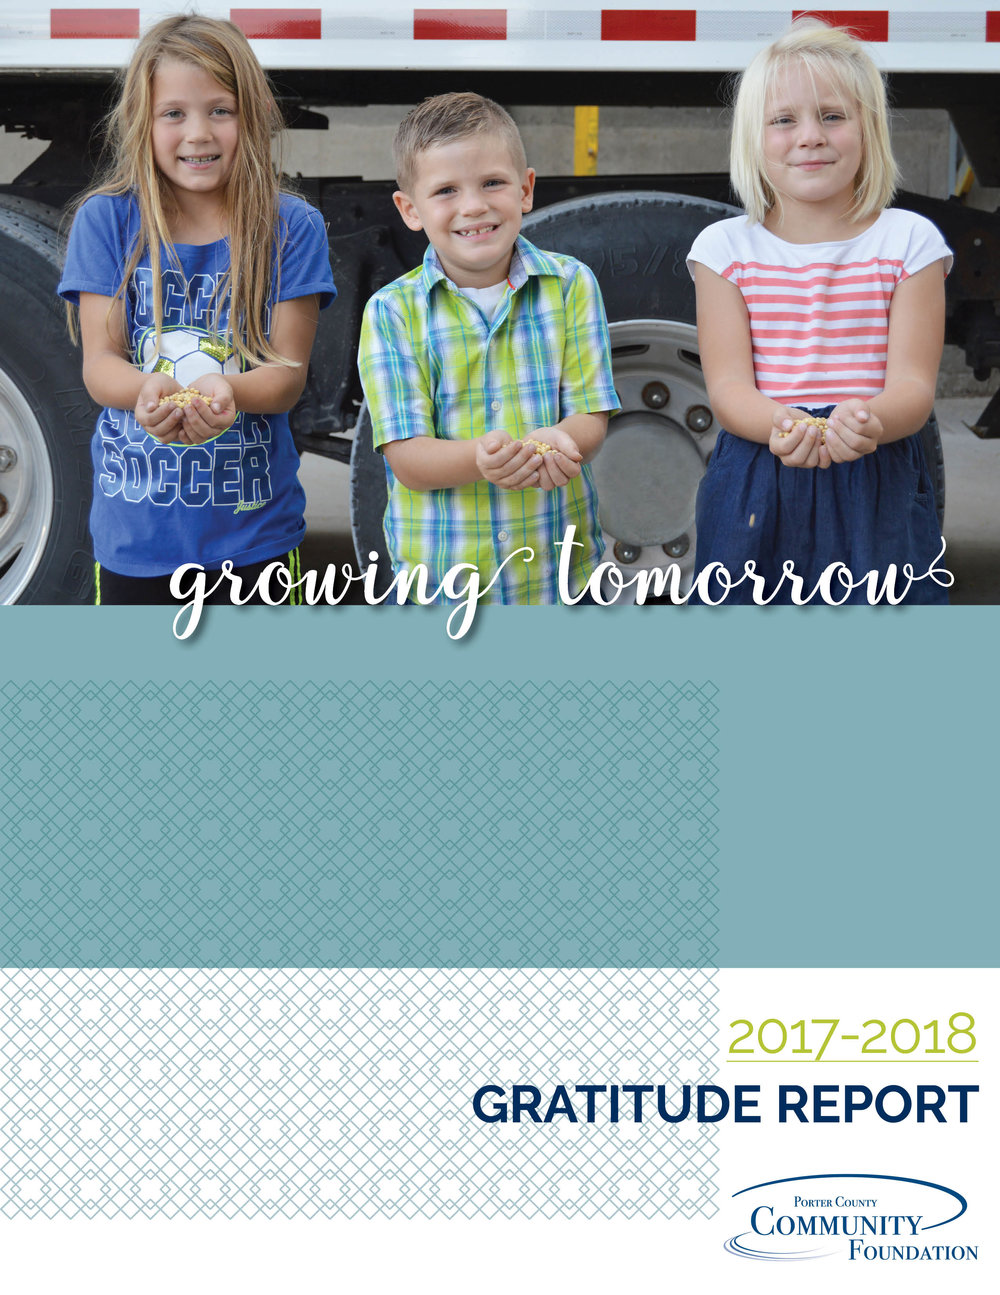 Porter County Community Foundation Gratitude Report 2018